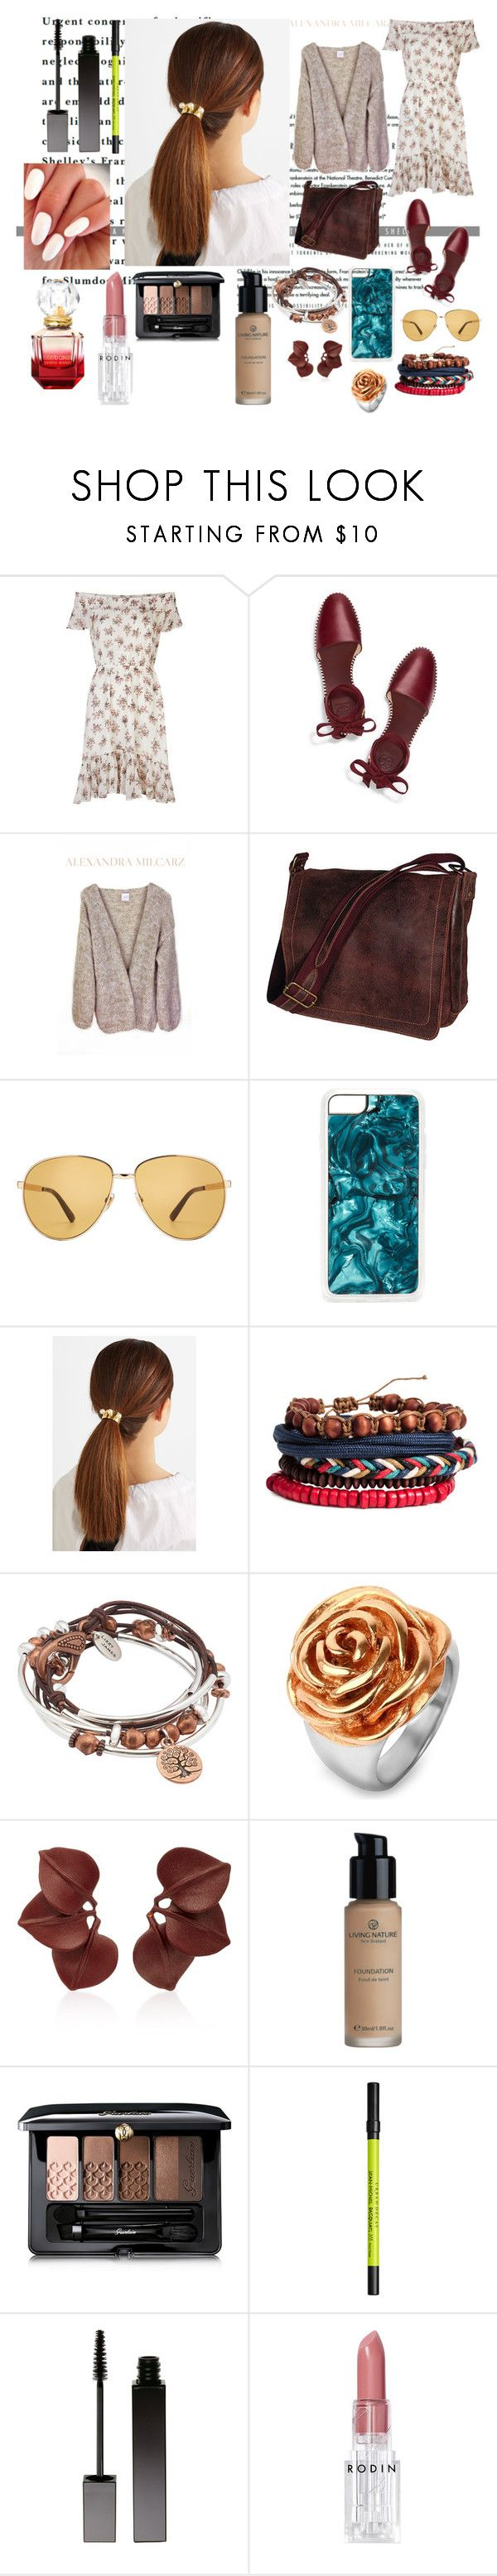 """Argle-bargle."" by it-srabina ❤ liked on Polyvore featuring Denim & Supply by Ralph Lauren, Tory Burch, David King & Co., Gucci, Zero Gravity, Jennifer Behr, Lizzy James, West Coast Jewelry, Guerlain and Urban Decay"